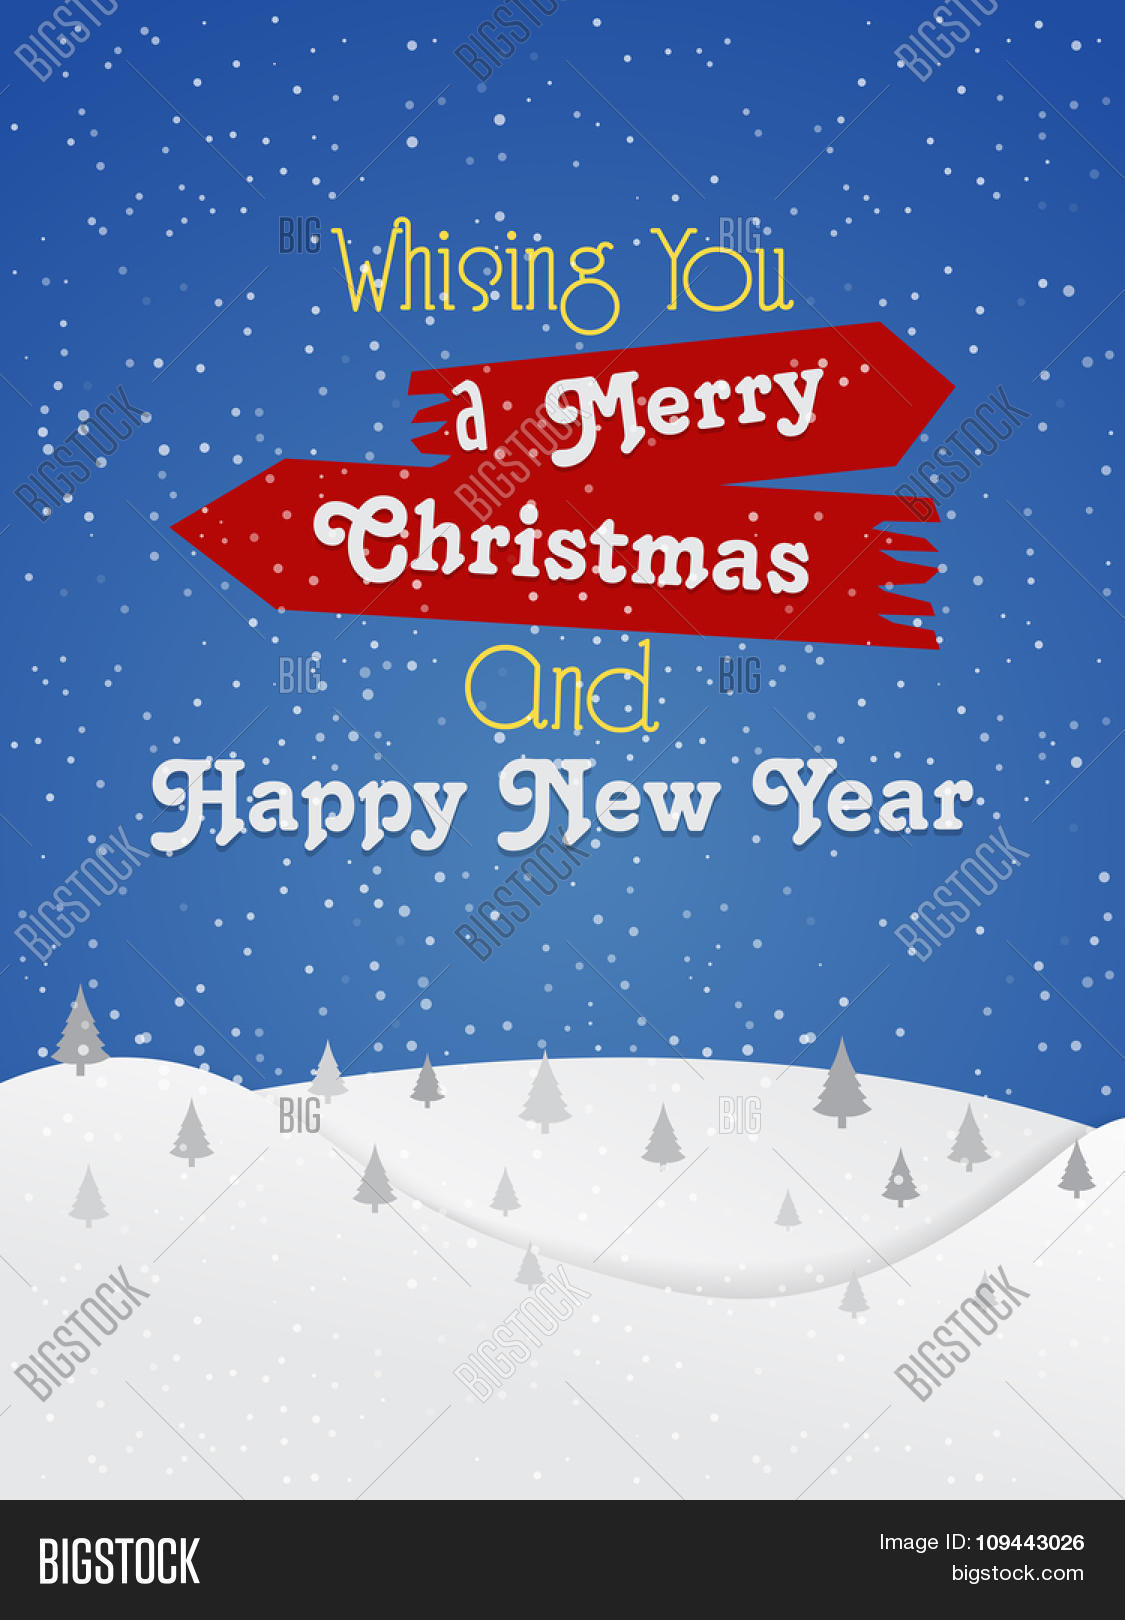 stylish flyer banner or pamphlet winter background for merry stylish flyer banner or pamphlet winter background for merry christmas and happy new year